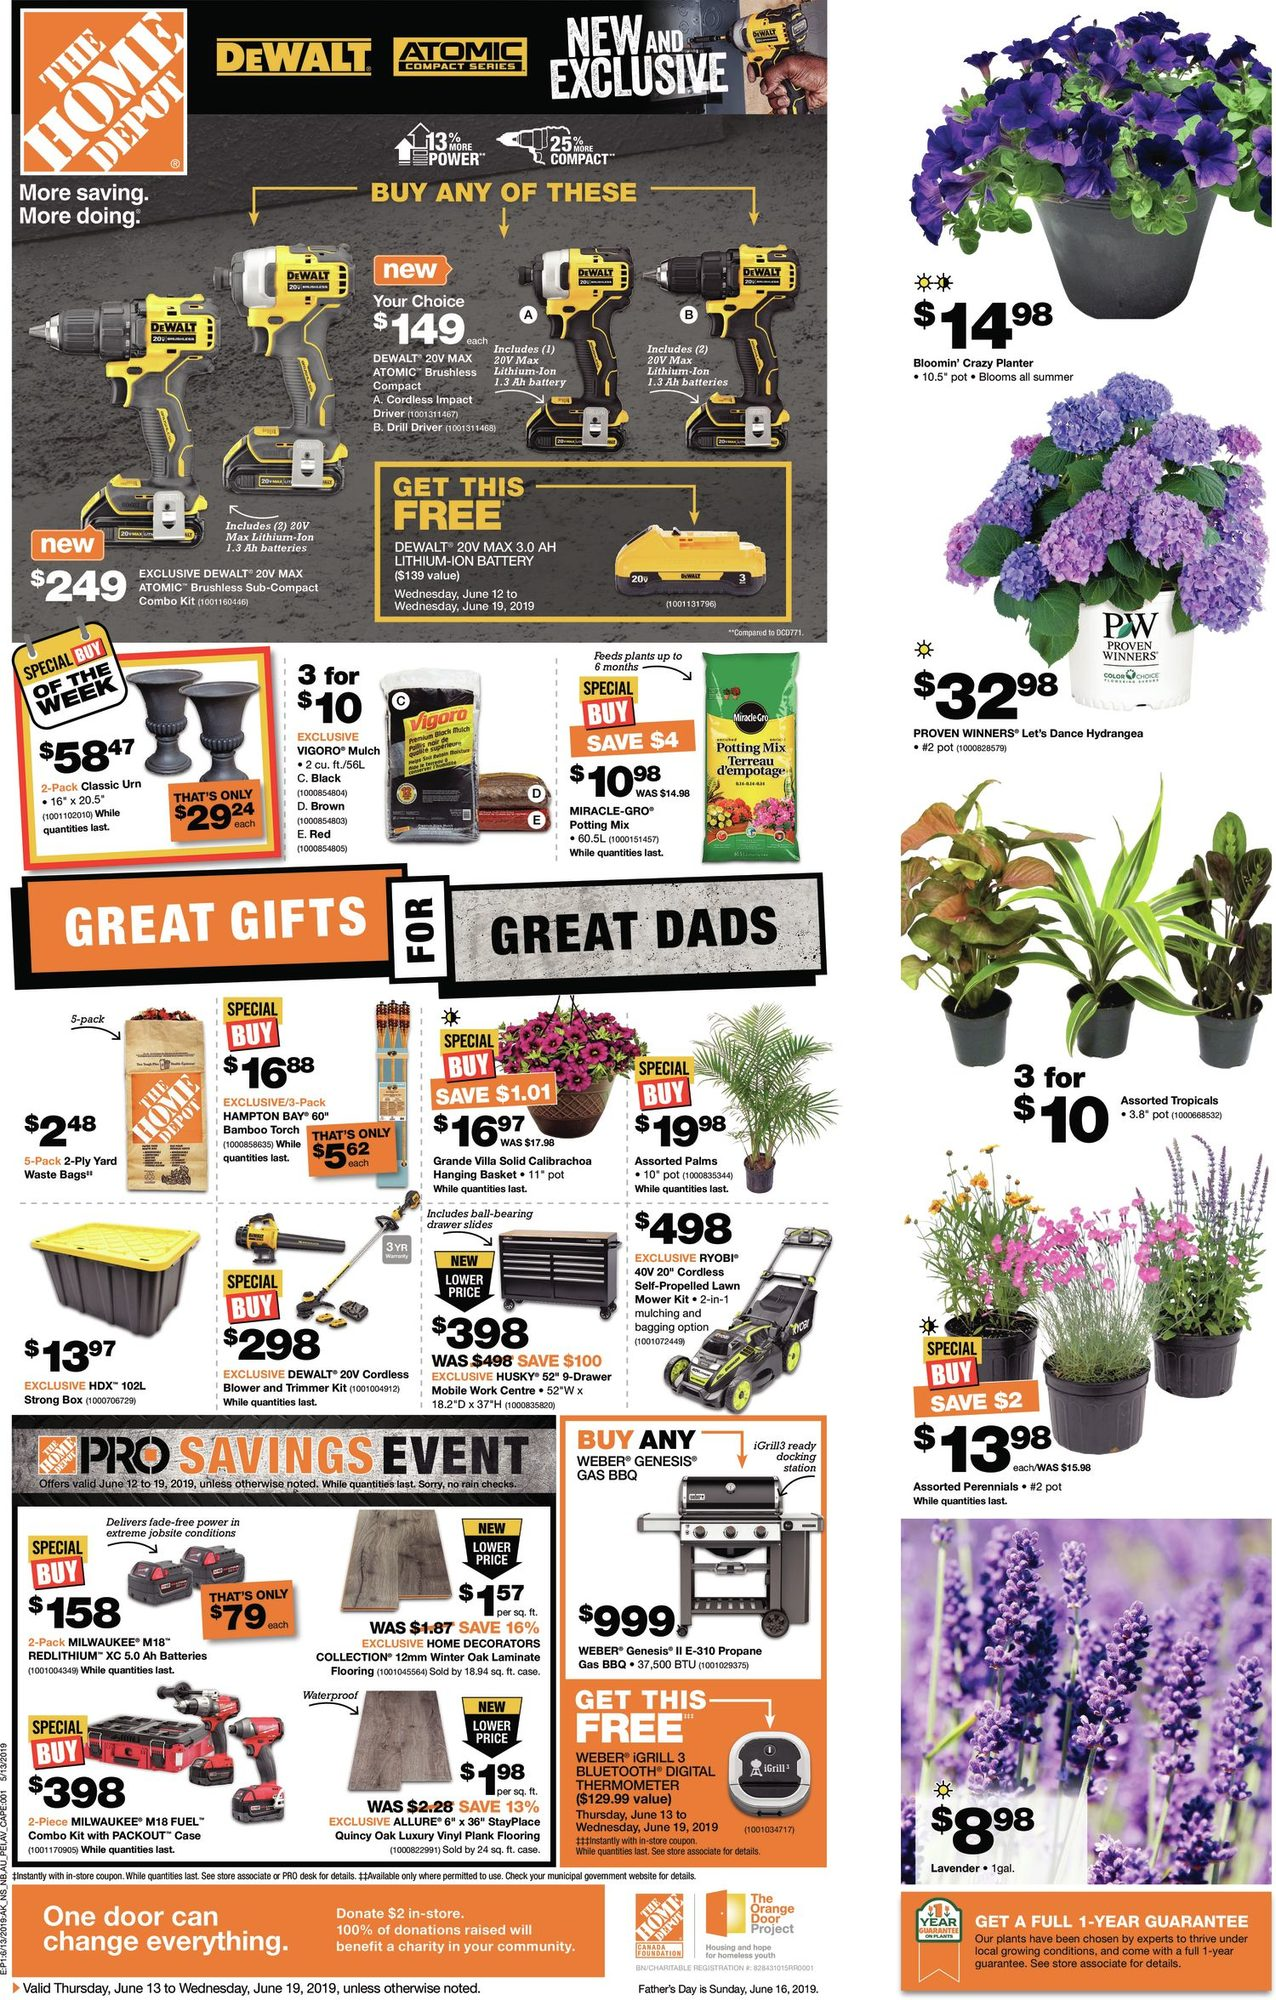 Weekly - Great Gifts for Great Dads - Home Depot June 13